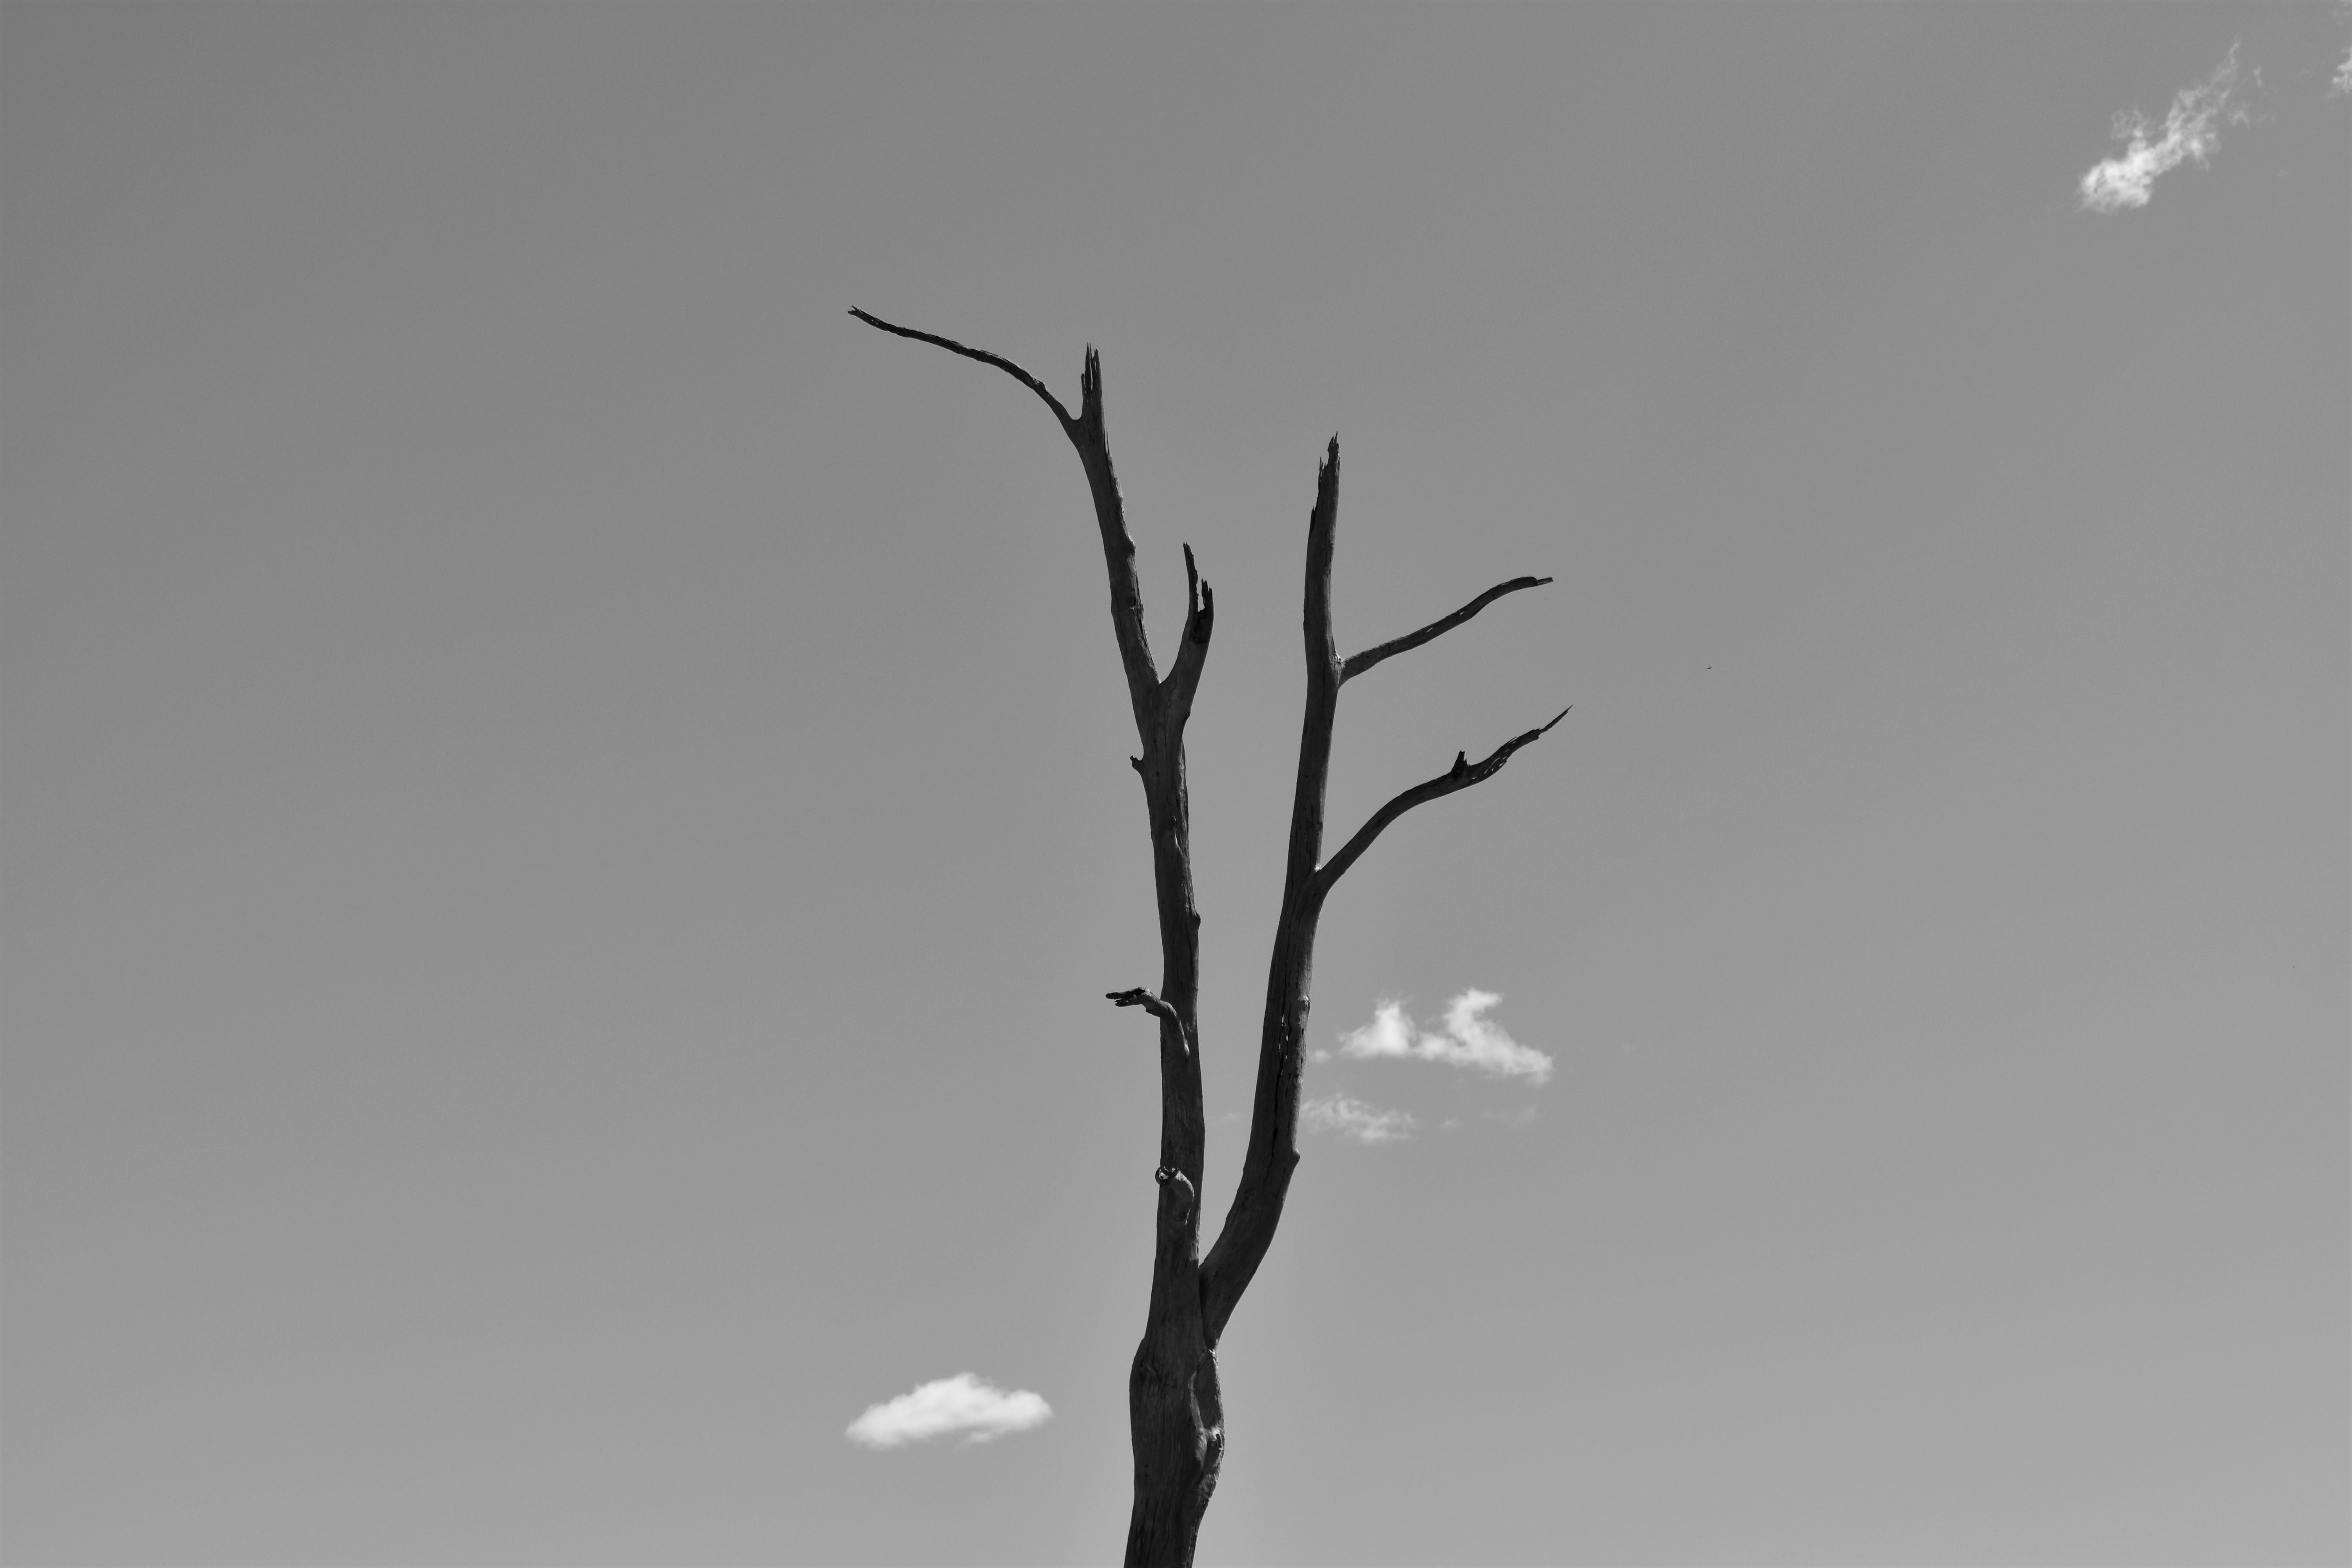 Monochrome Photo of Leafless Tree